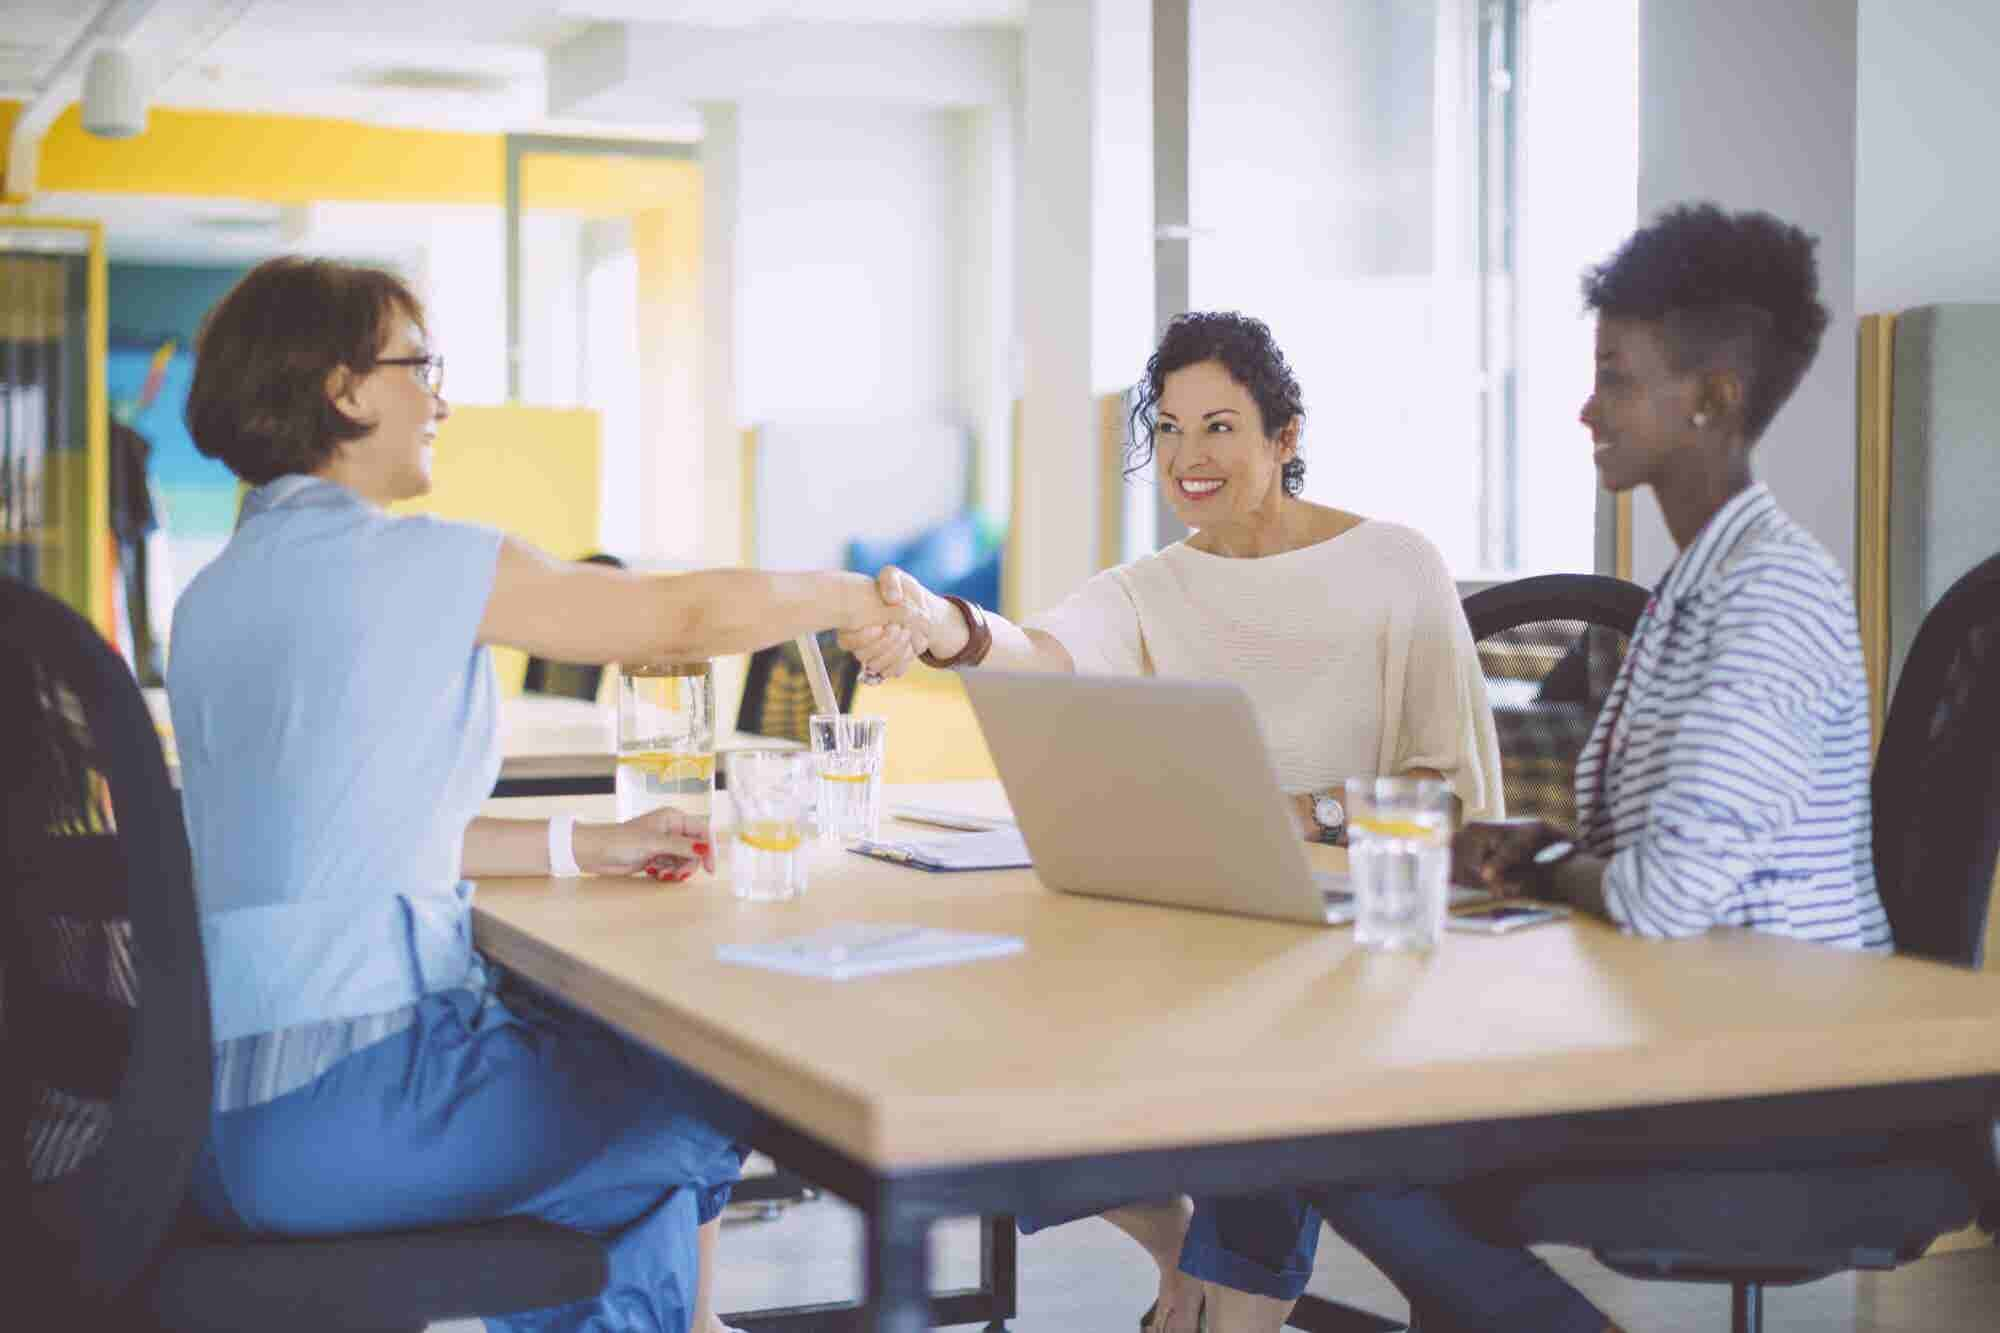 4 Workplace Trends Every Small Business Should Know About for 2019